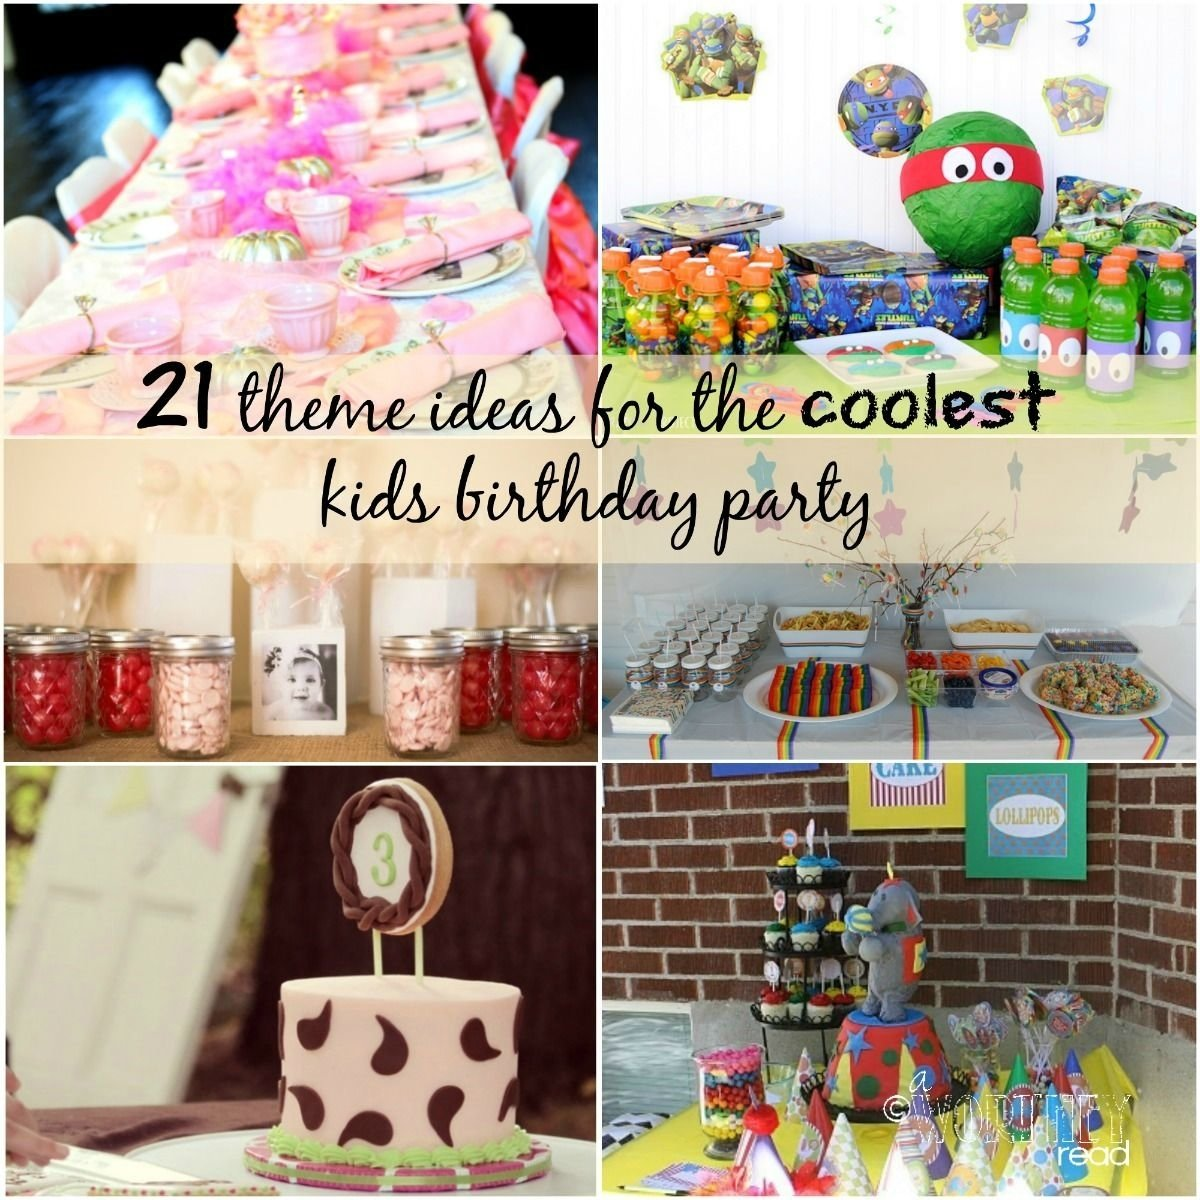 10 Gorgeous Party Theme Ideas For Adults Unique 21 theme ideas for the coolest kids birthday party theme ideas and 2 2021